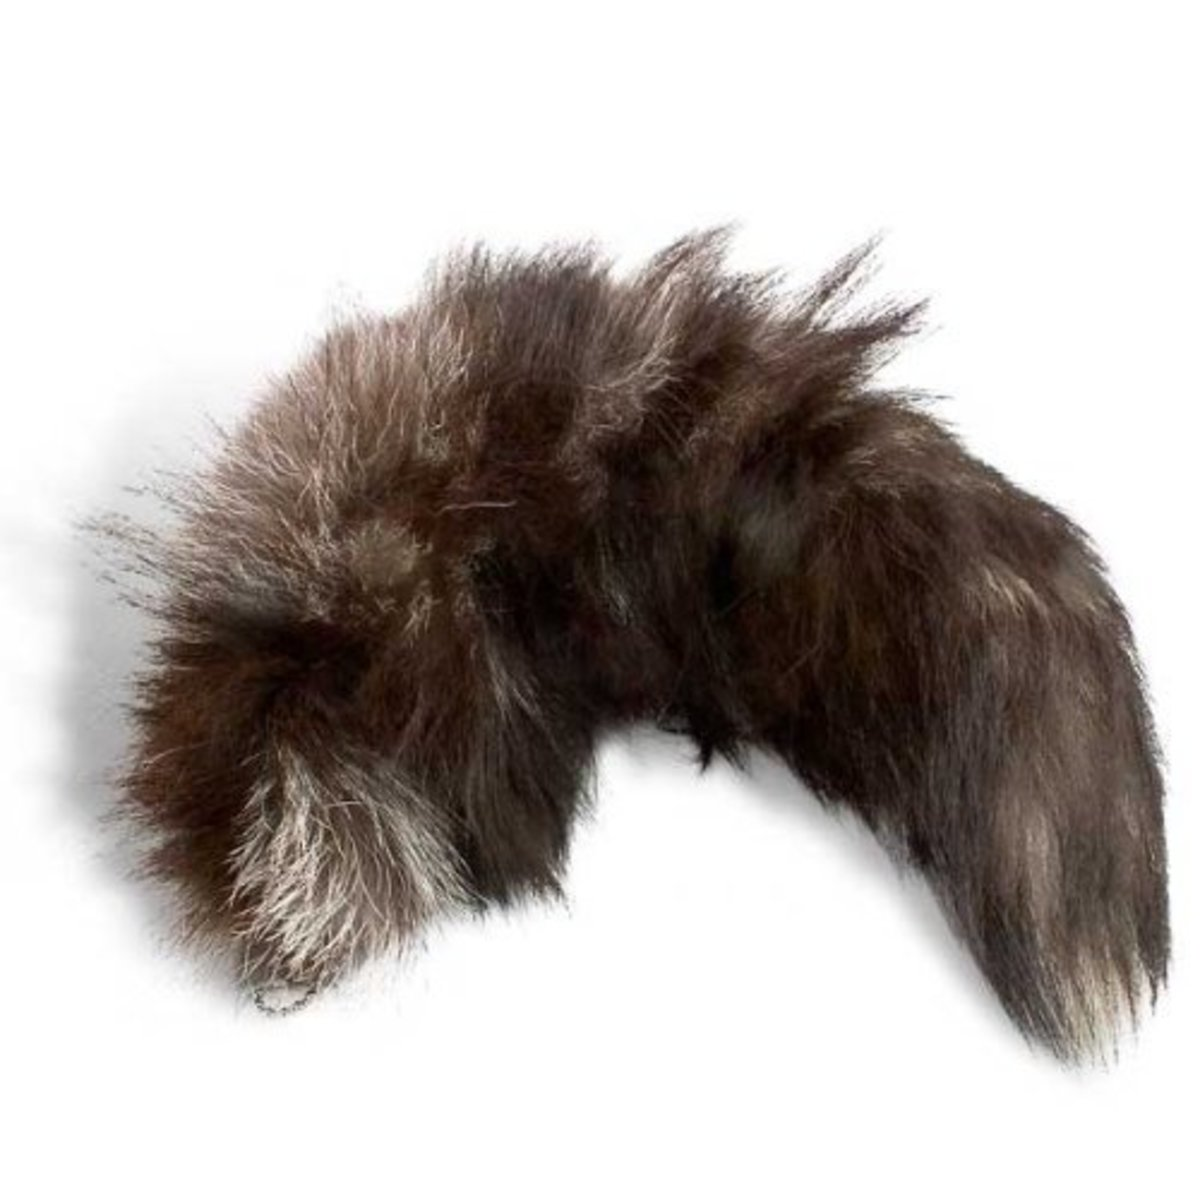 Fox Tail - Tail for Your Jeans